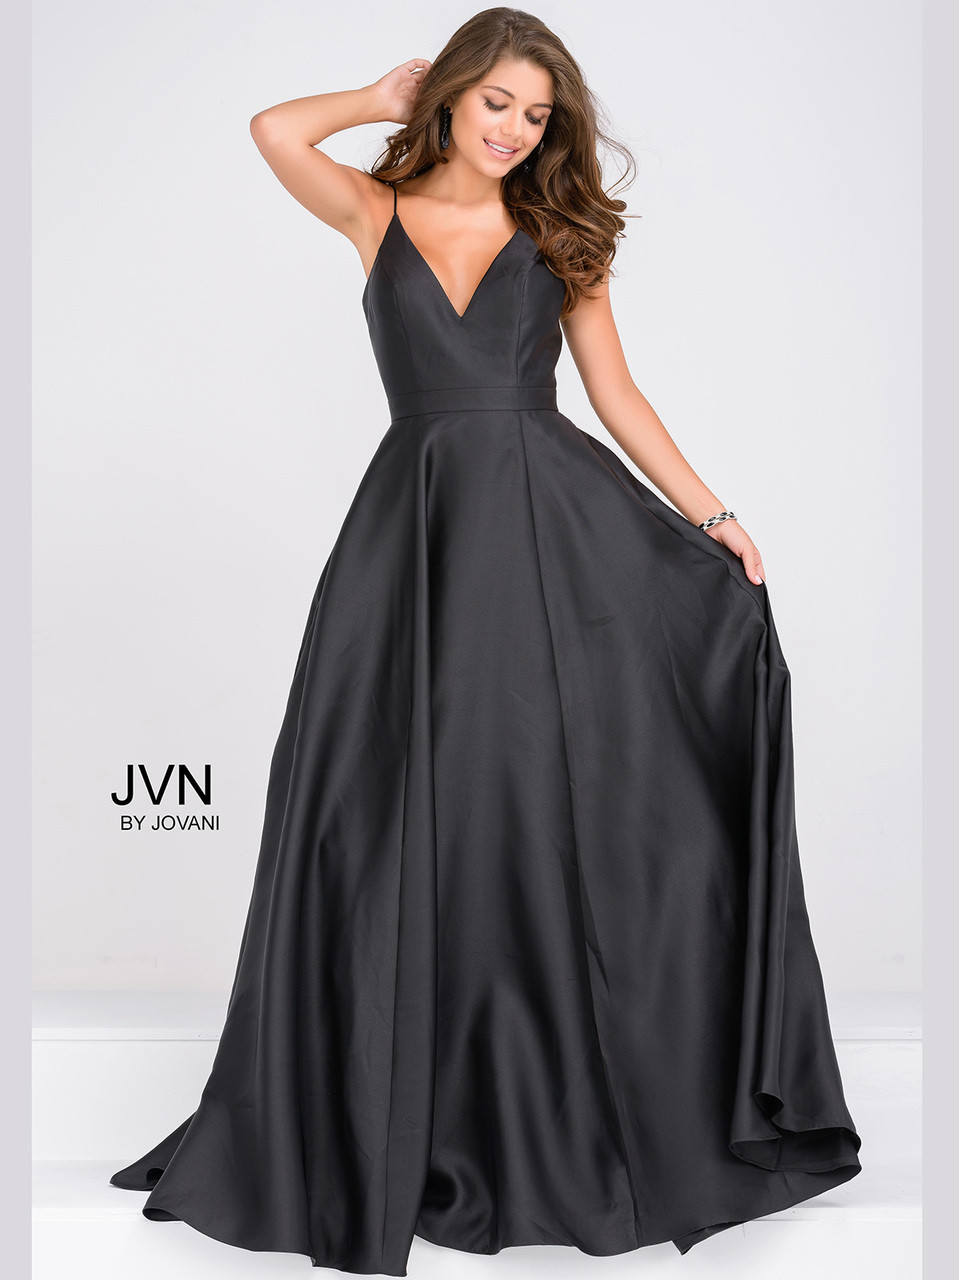 Deep Plunge V-Neck Satin Prom Gown by Jovani JVN48791